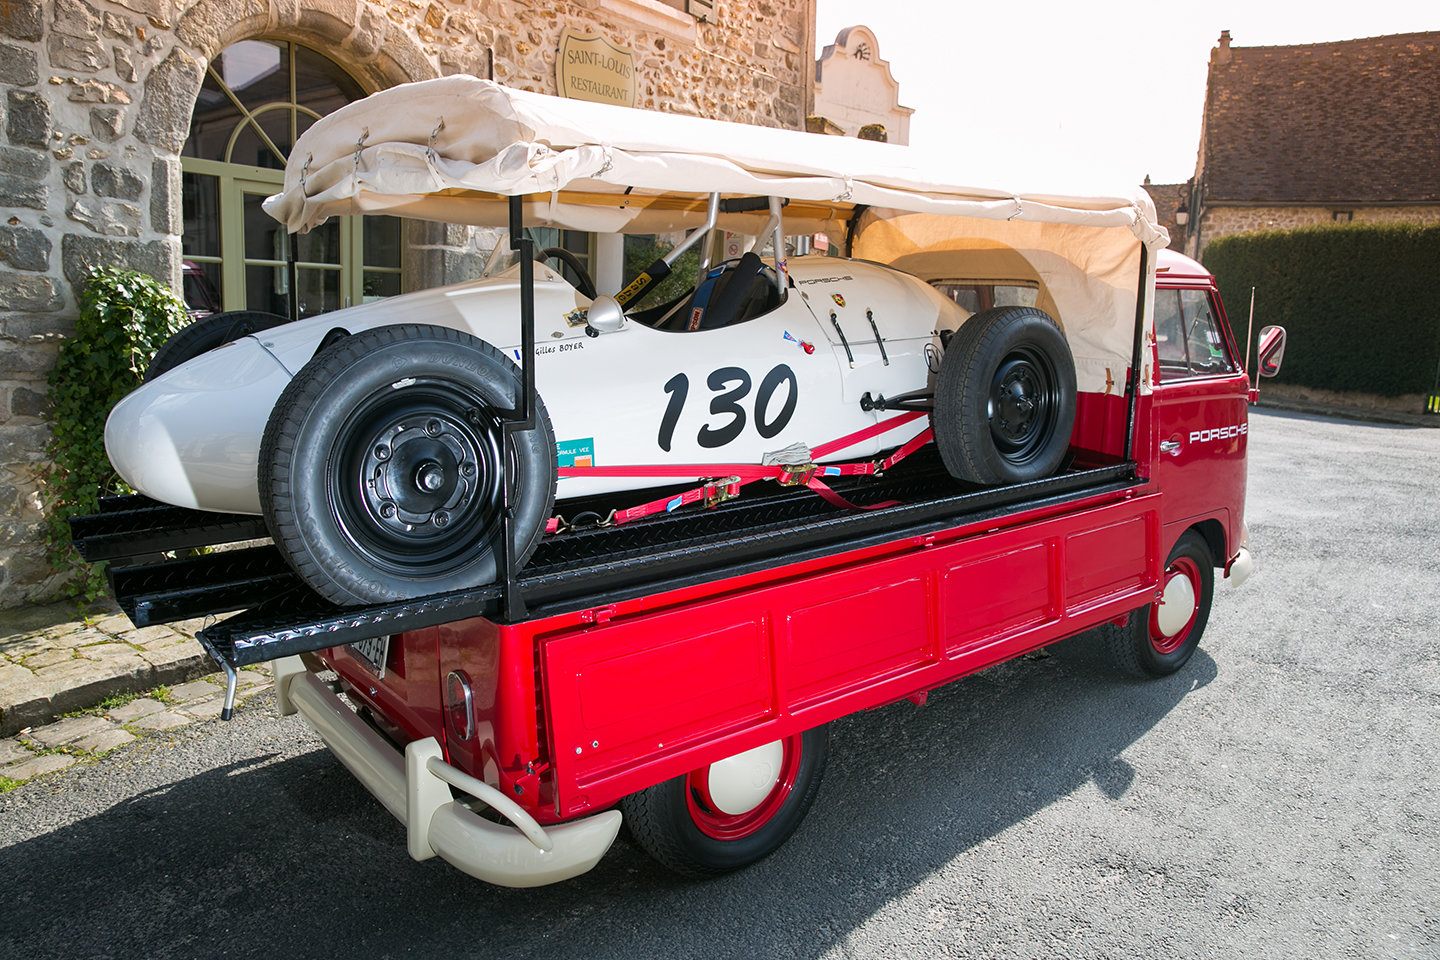 1963 COMBI PICK-UP / FORMULE V For Sale by Auction (picture 2 of 6)